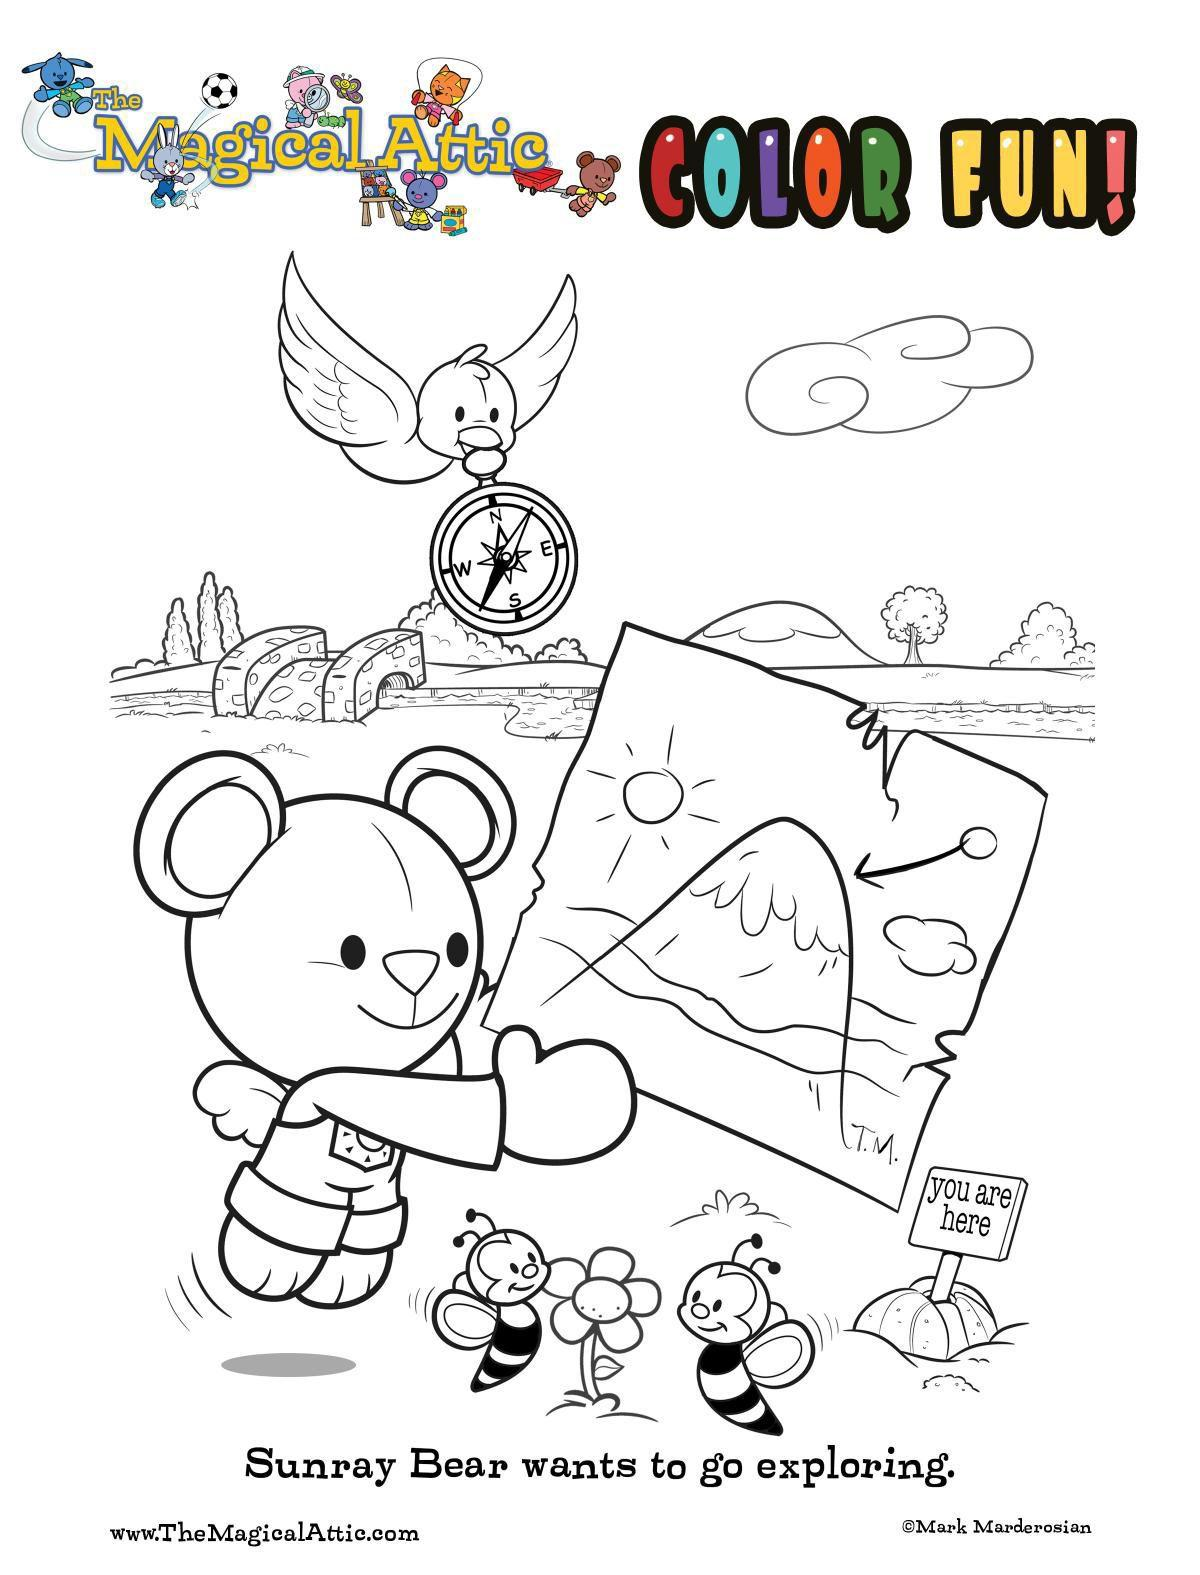 Exploring coloring fun with Sunray Bear